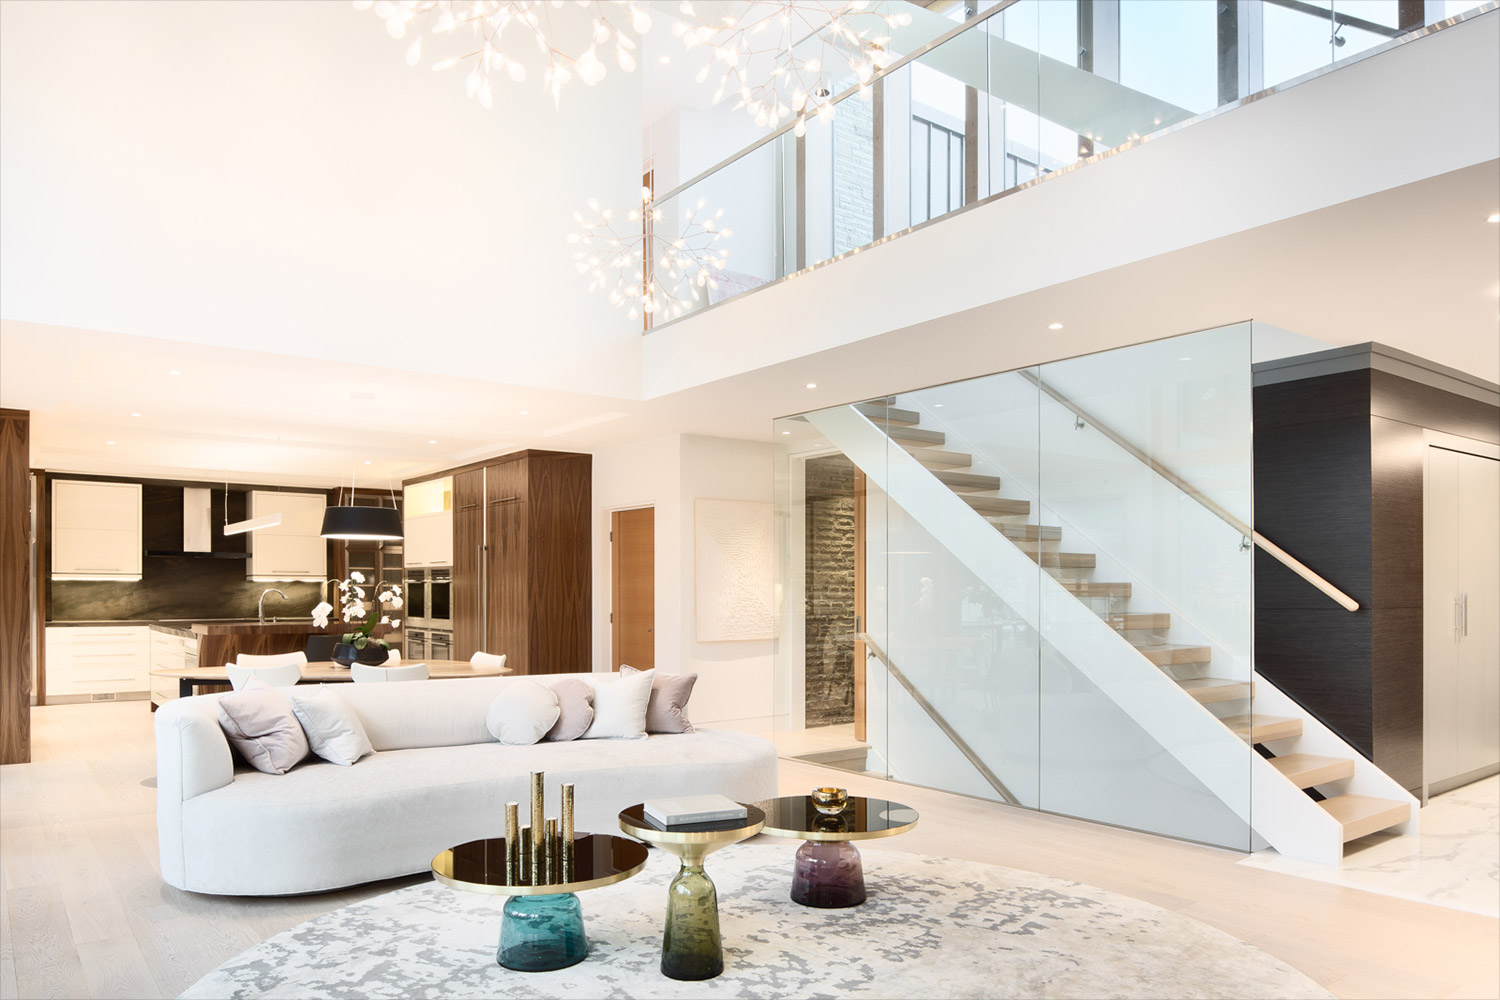 Double height living room of modern Toronto home with couch, wide plank flooring, and sculptural chandeliers